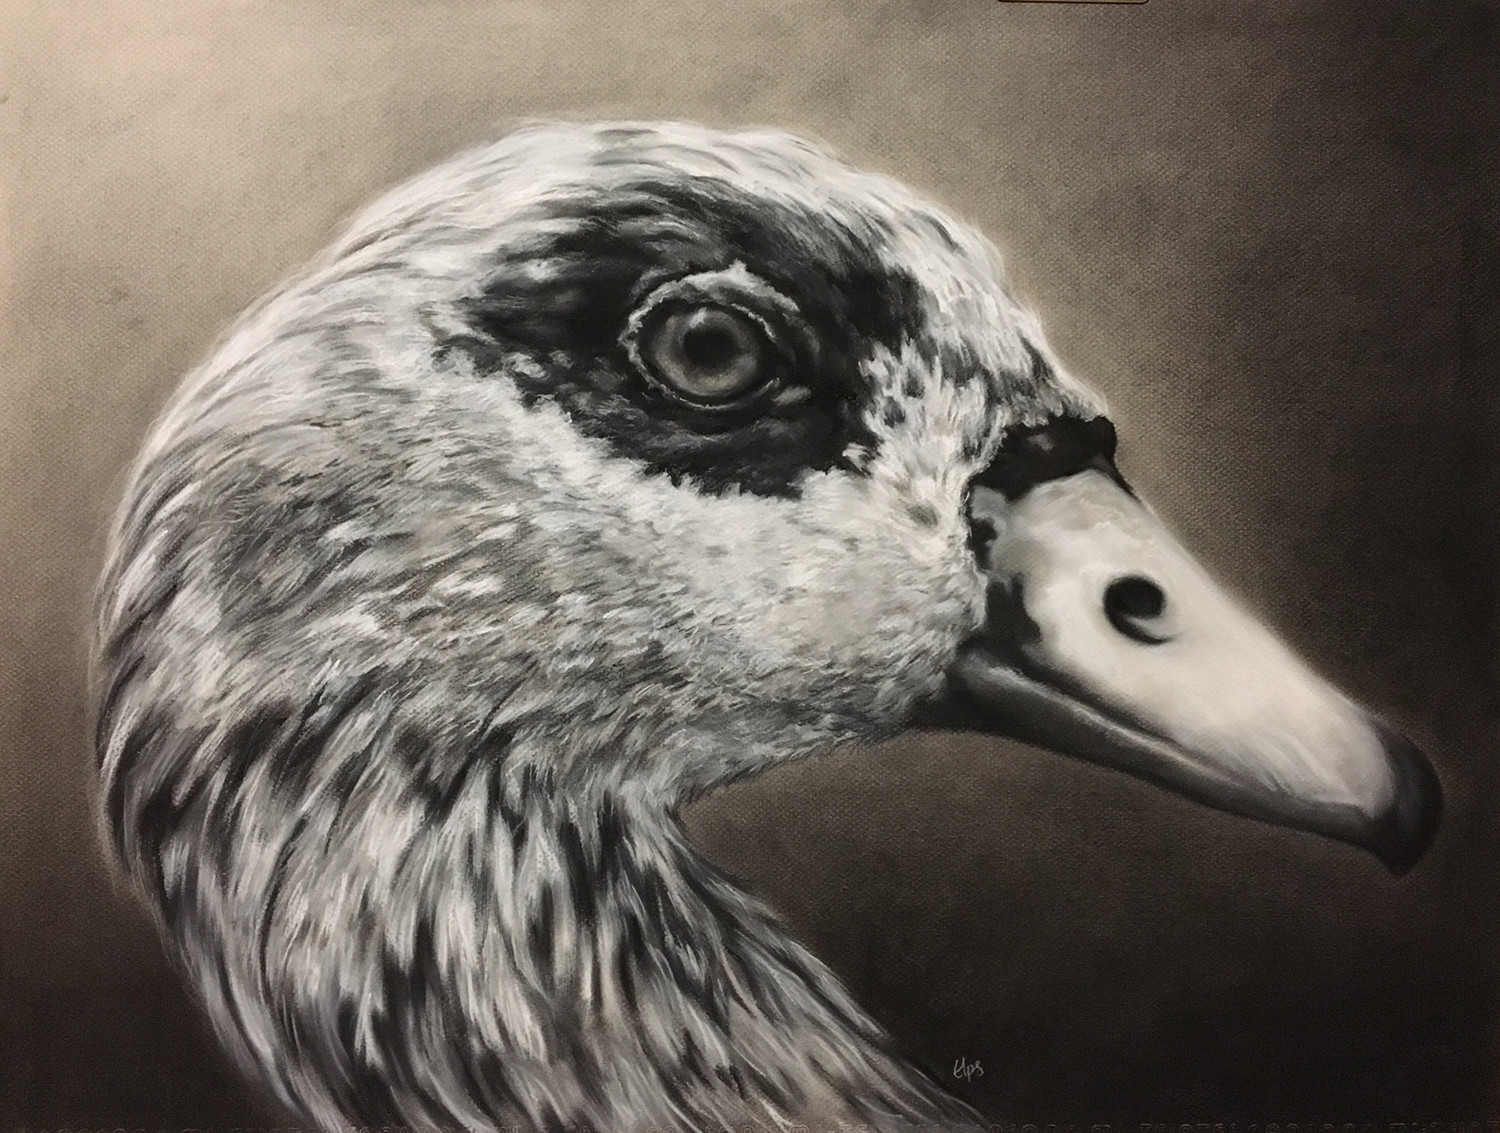 """Egyptian Goose,"" by art teacher Erica Perjatel-Stolba, was inspired by her obsession with birds."